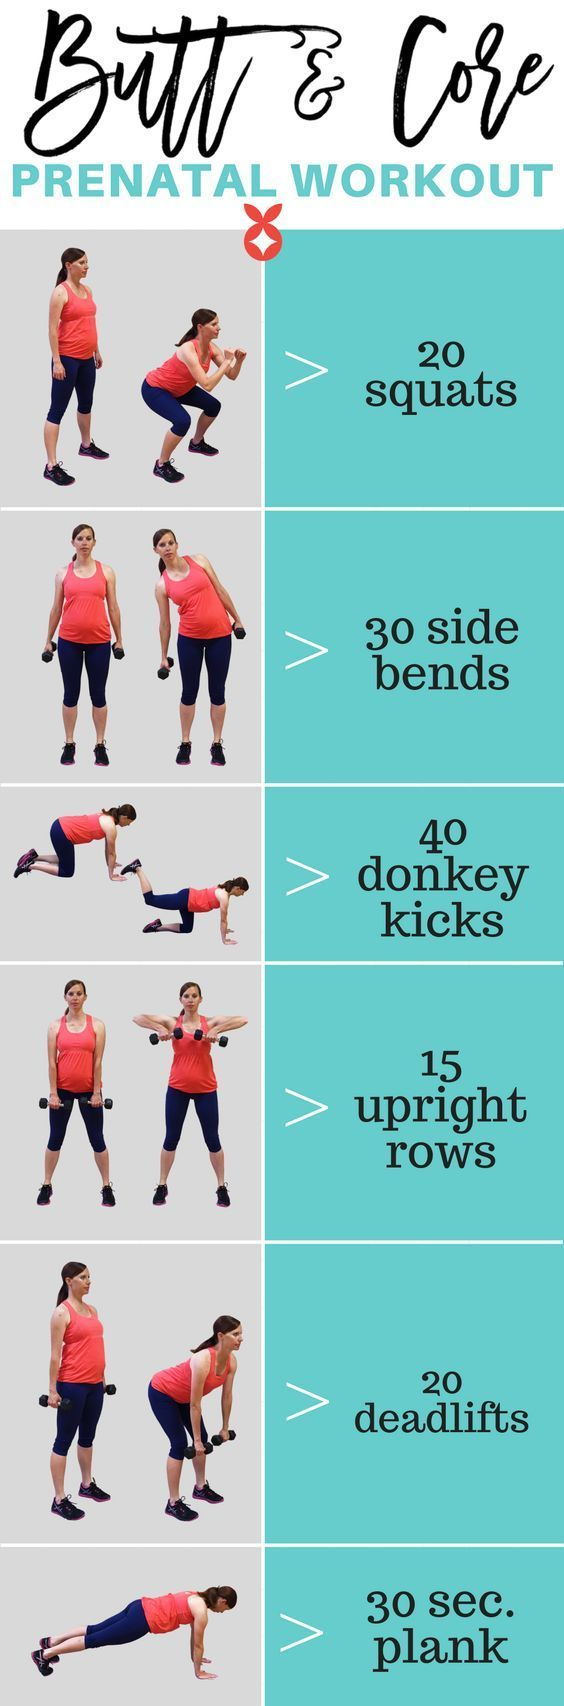 Butt and core pregnancy workout with instructions and photos